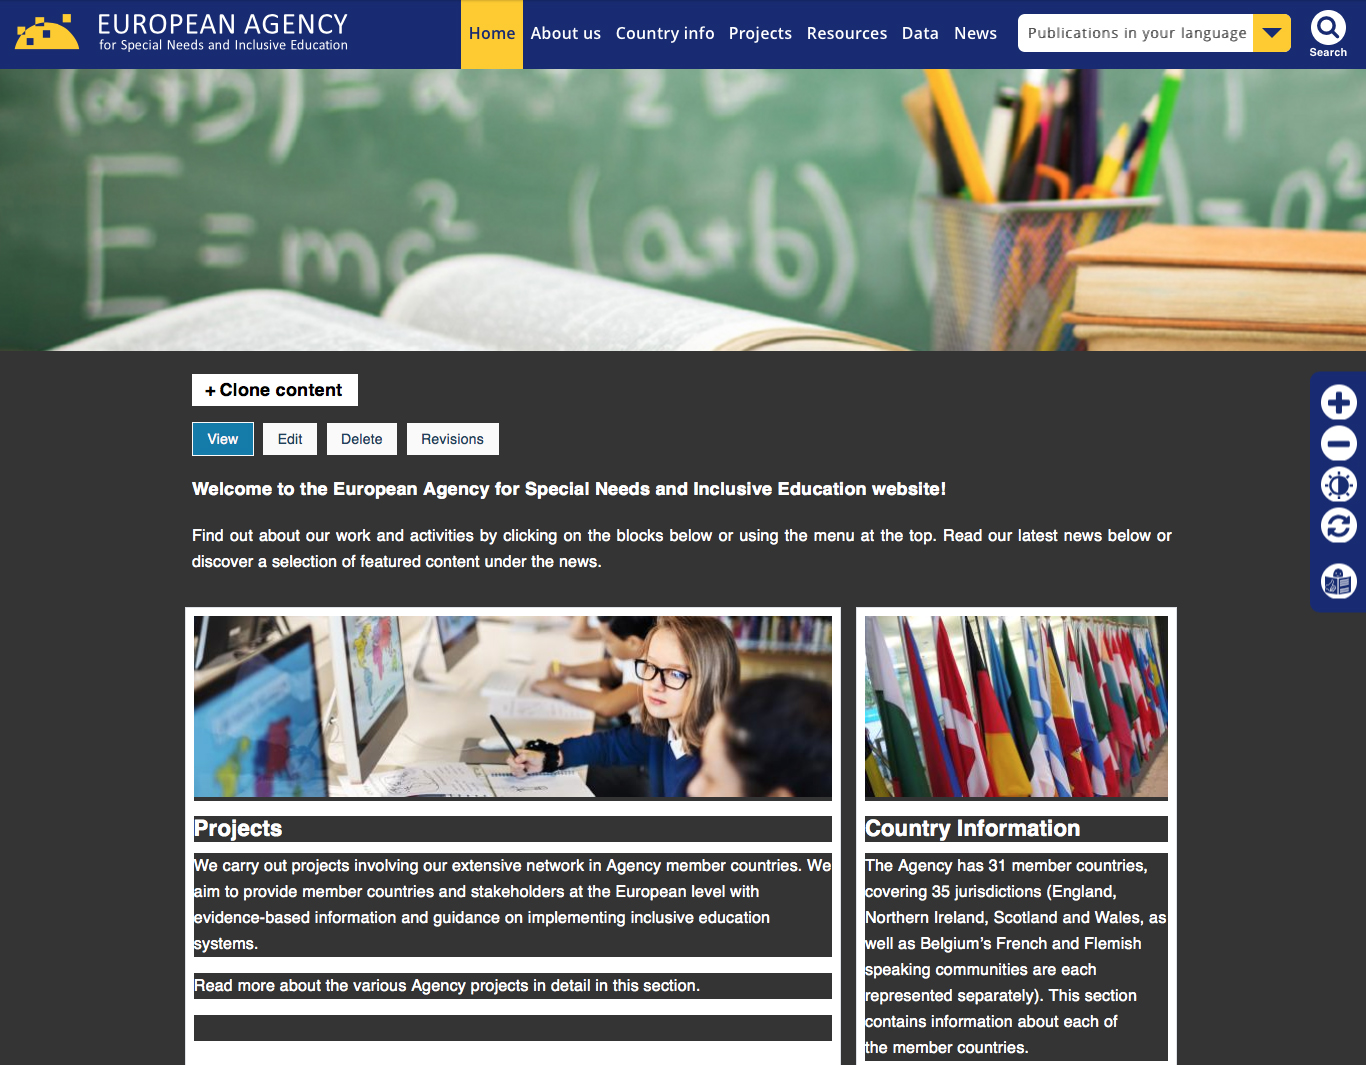 image showing the agency home page with dark contrast background